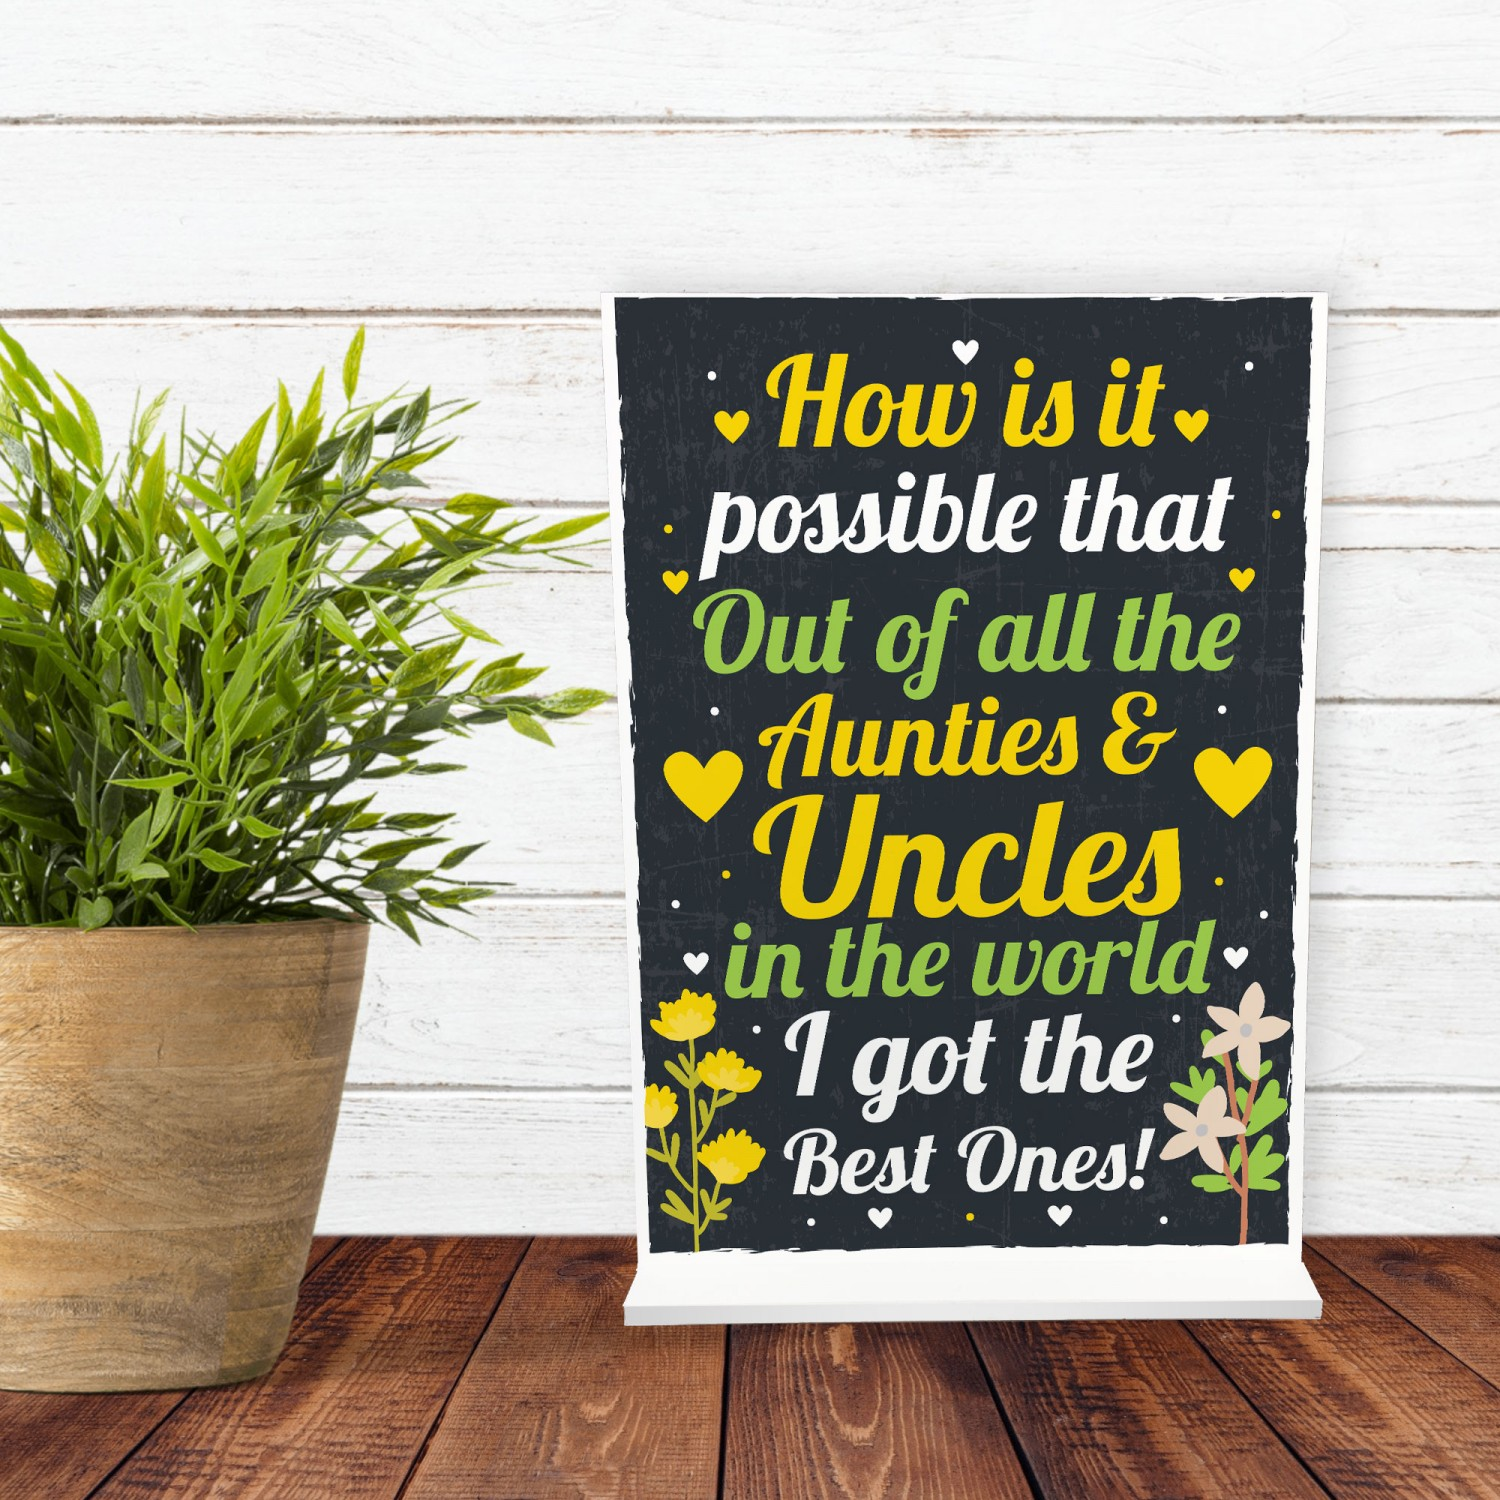 Auntie Uncle Christmas Gift Ideas Standing Plaque Thank You Gift